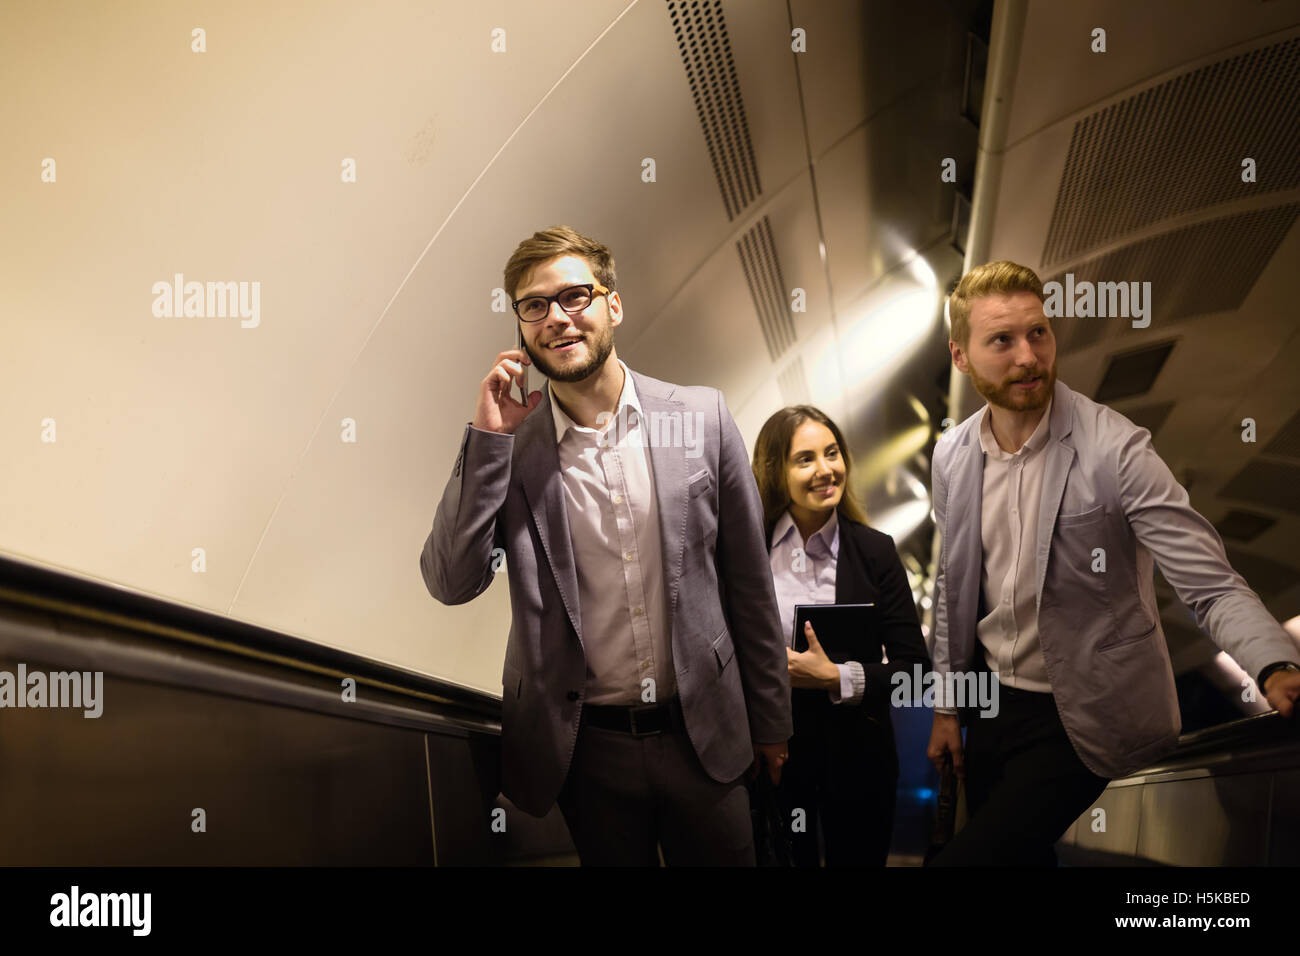 Businesspeople using subway as means of transport - Stock Image